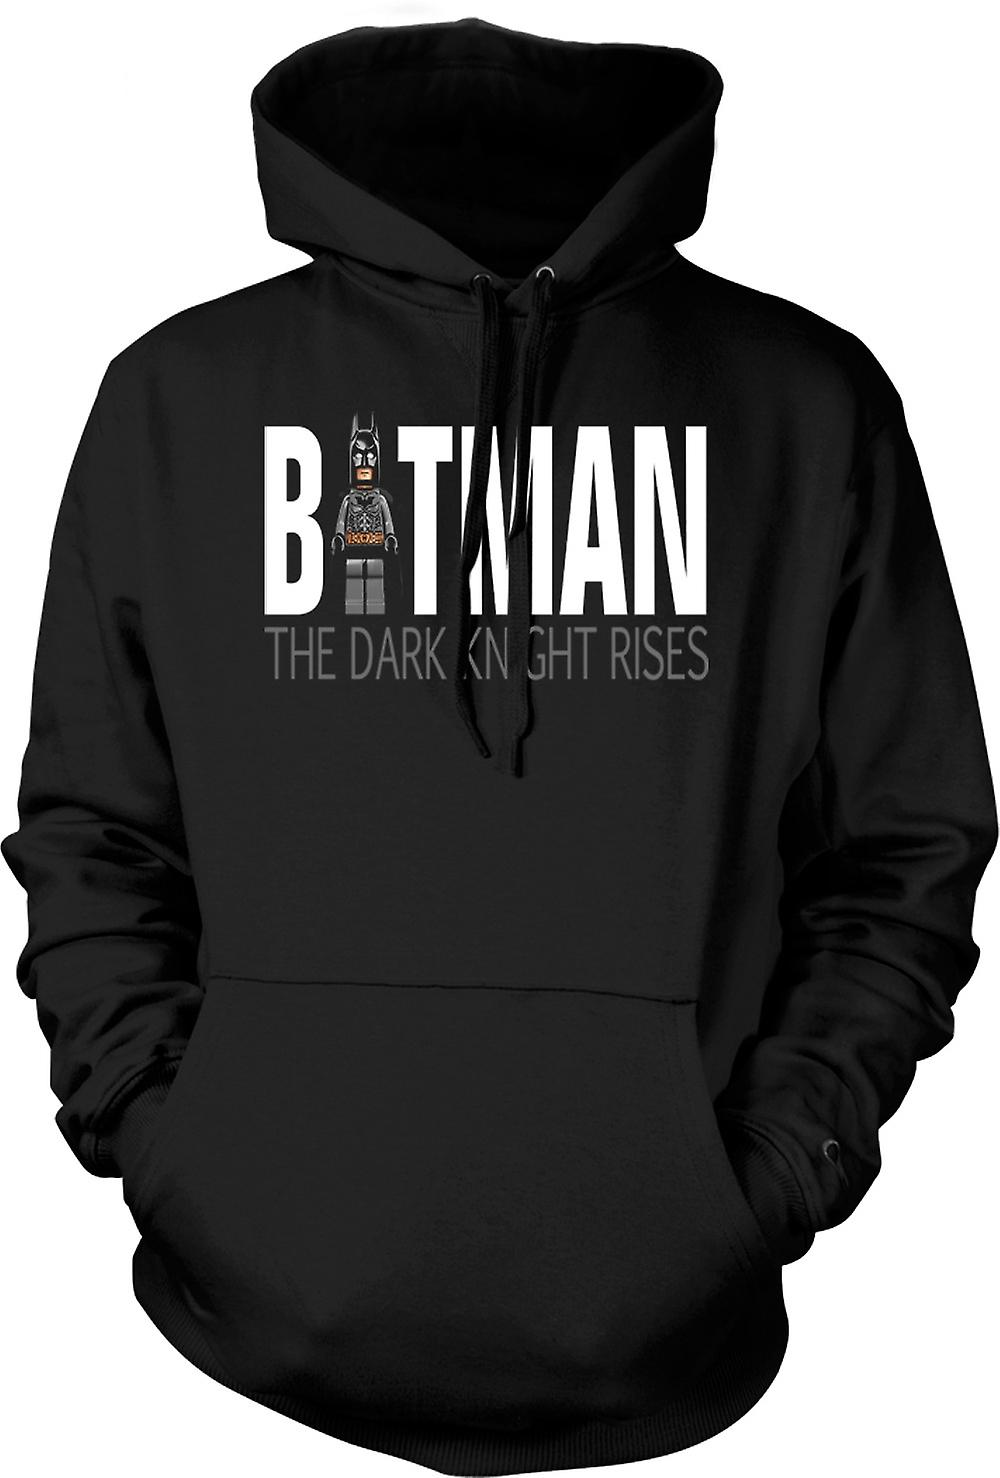 Mens Hoodie - Batman Lego - The Dark Knight Rises